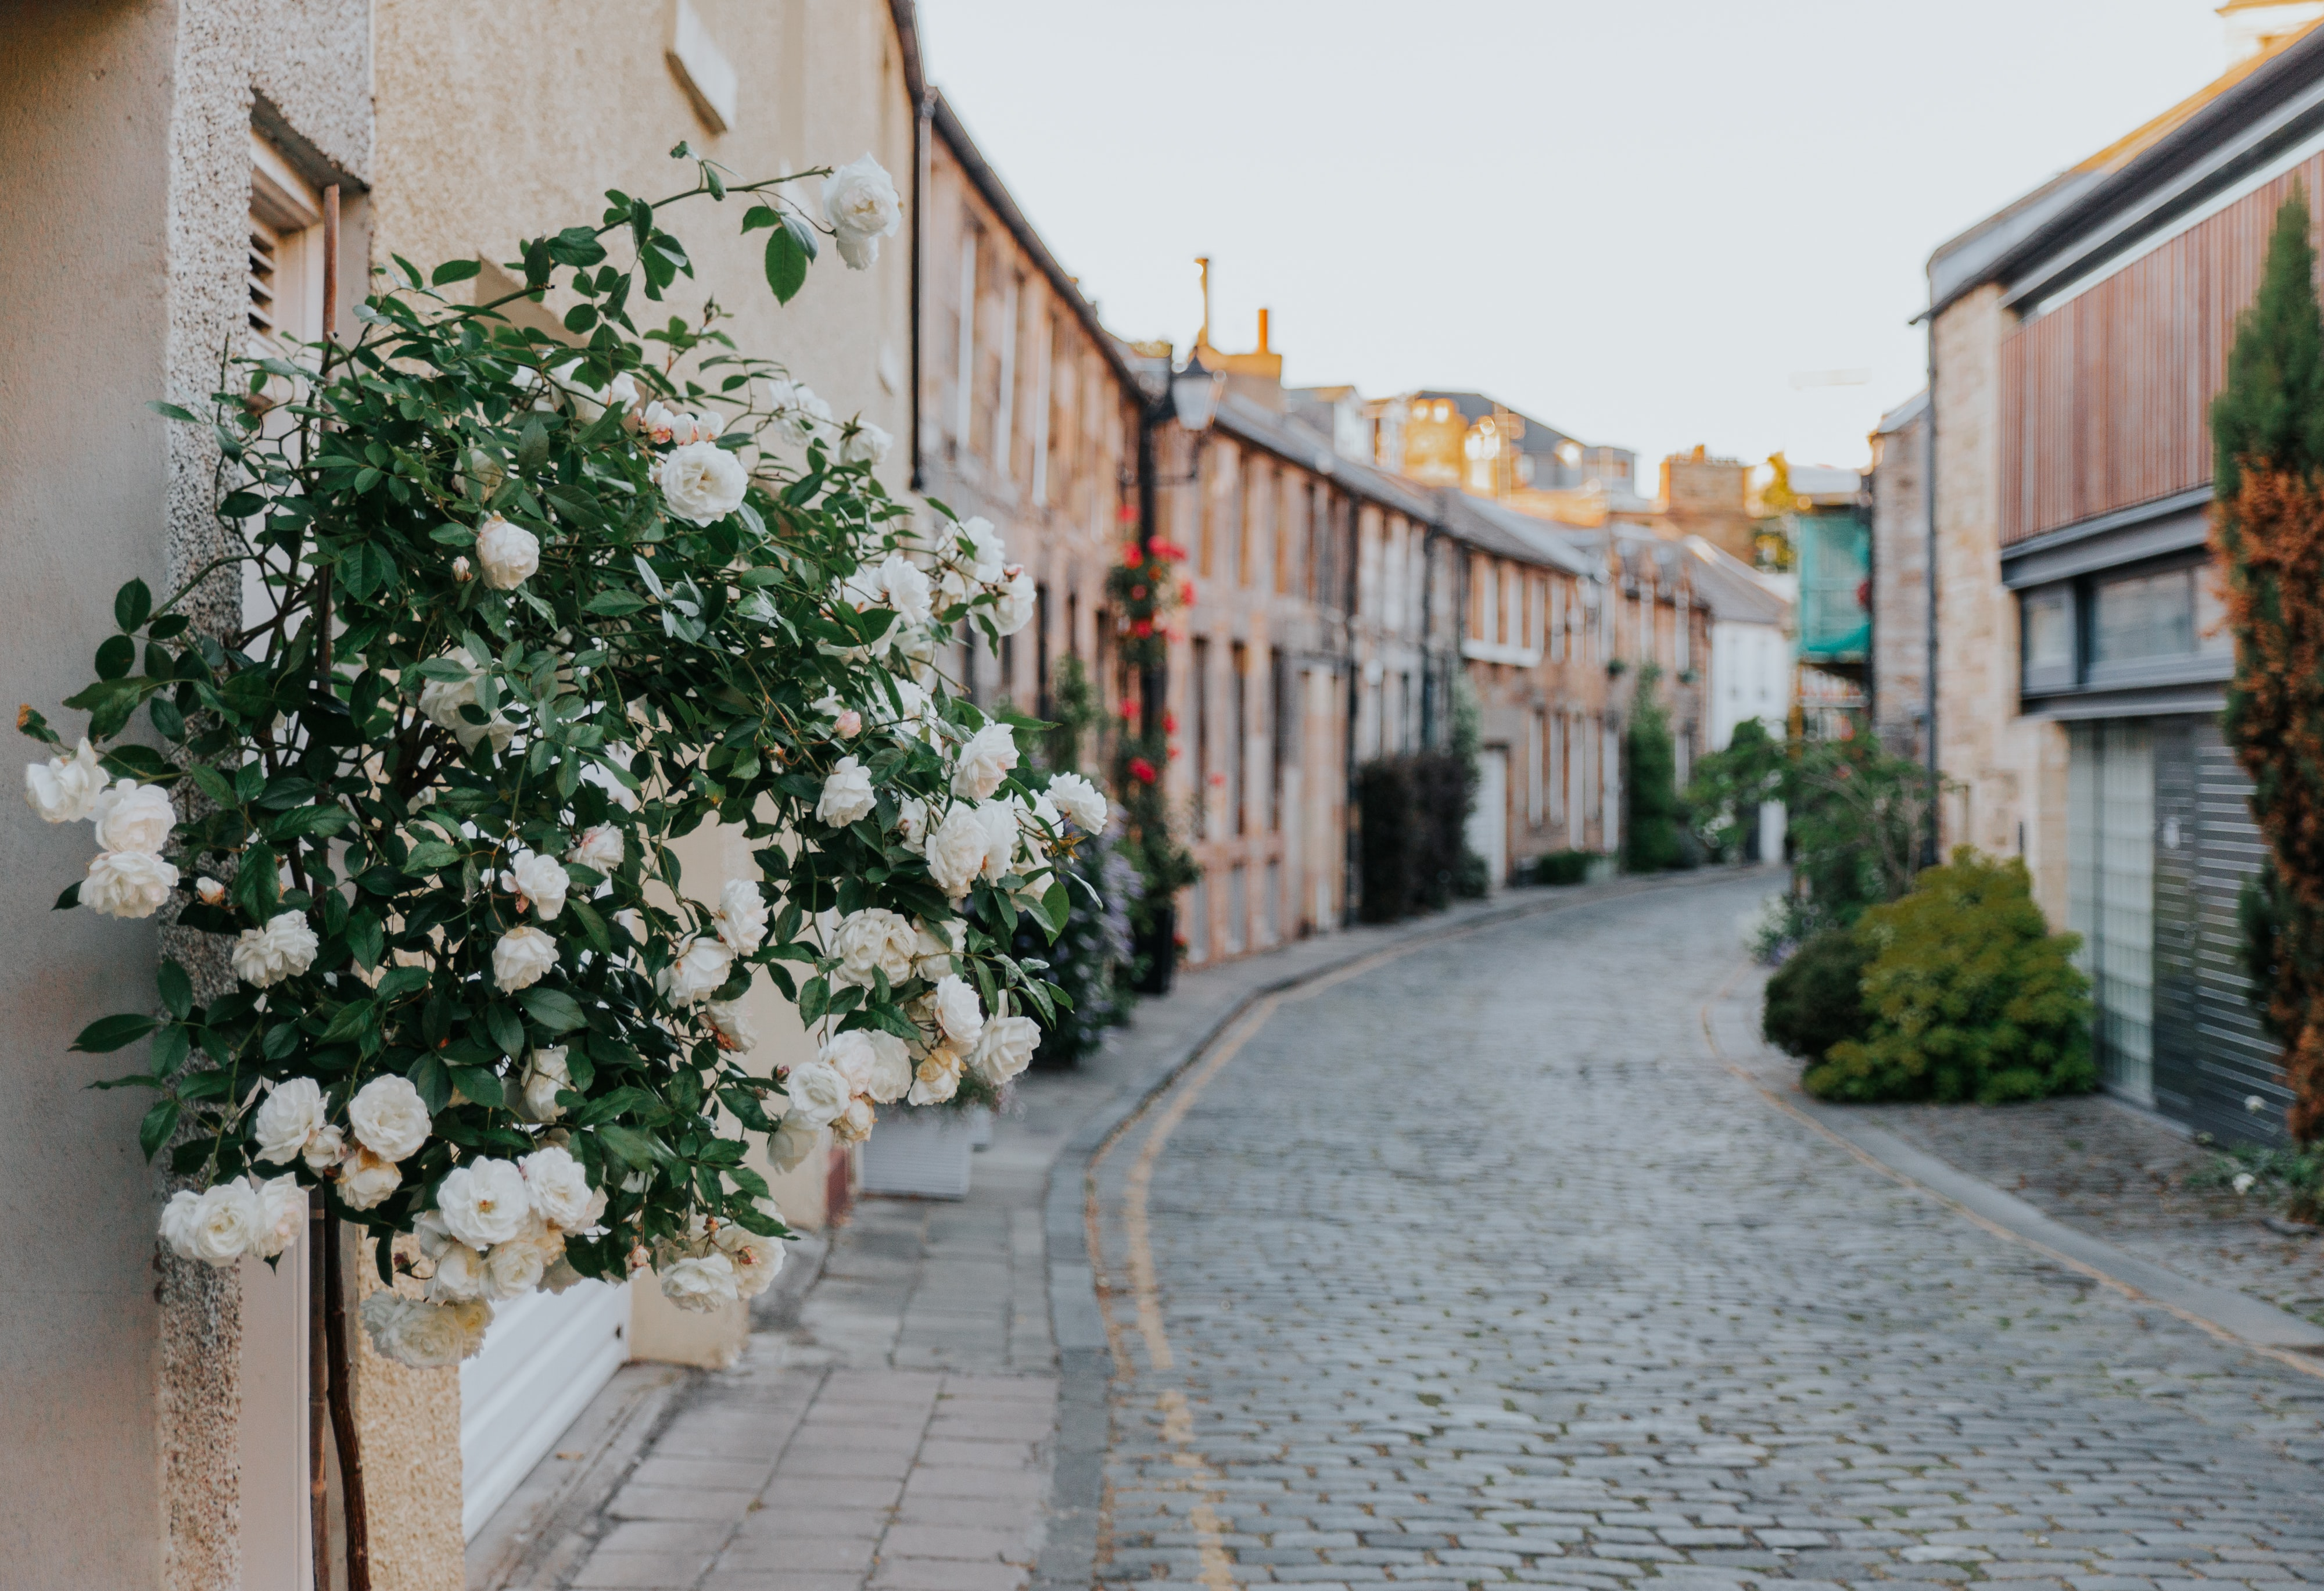 alley between village with flowers